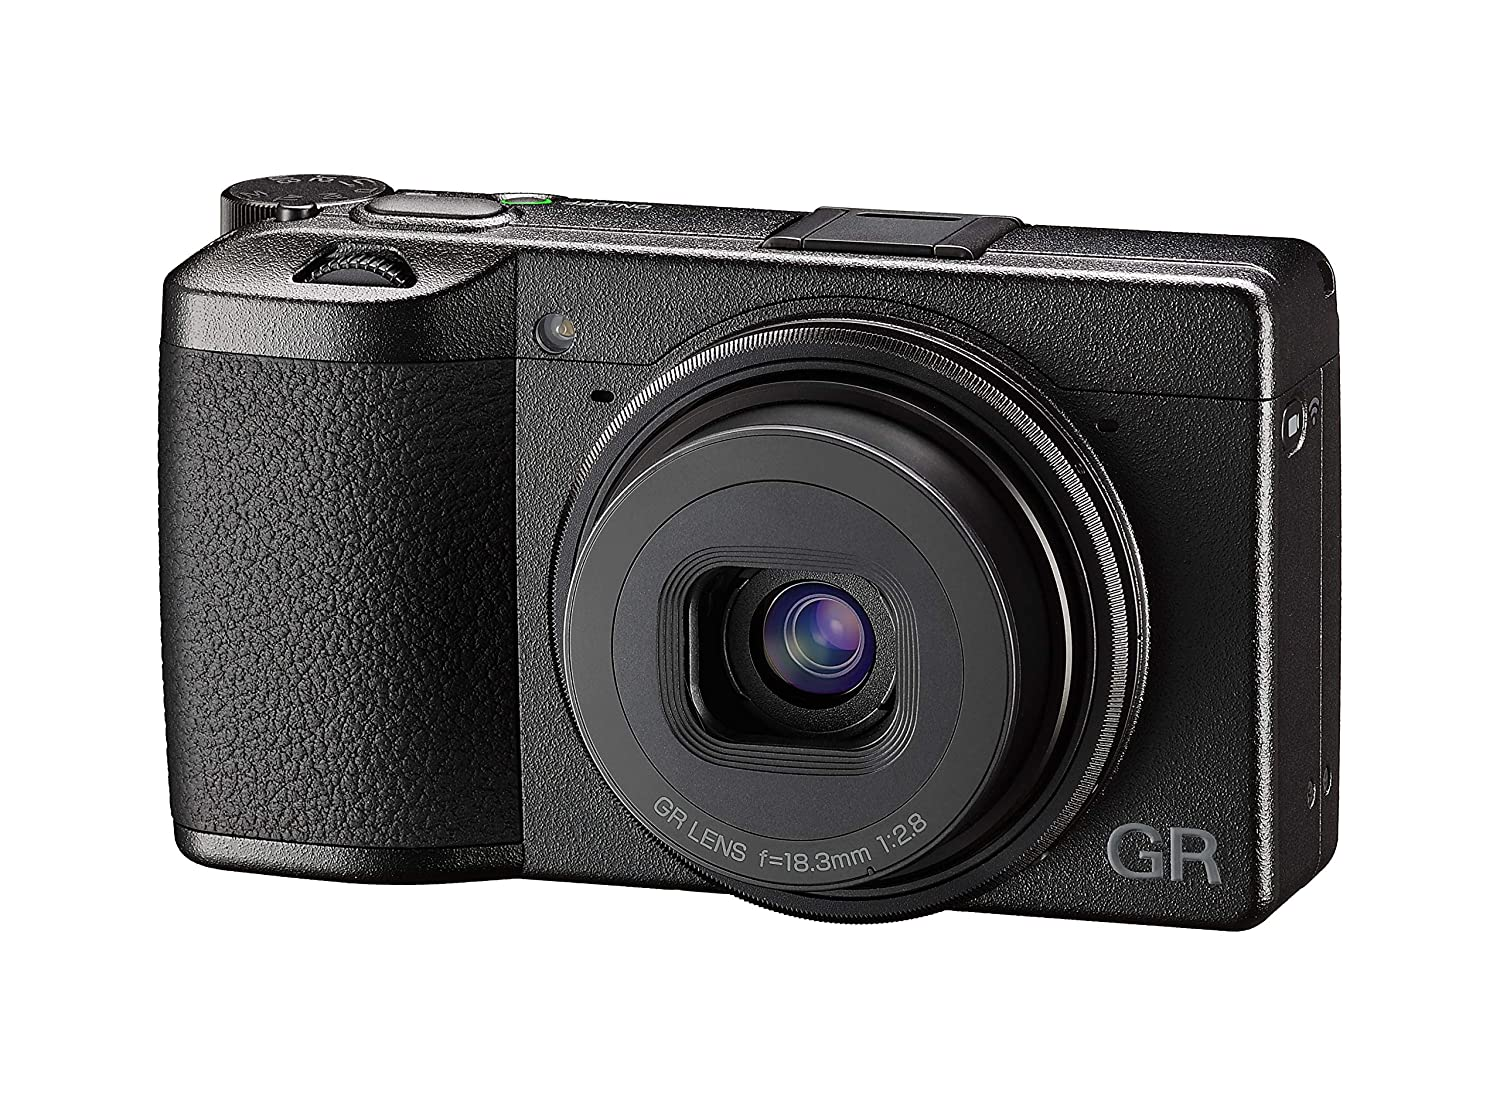 The GR III Digital Compact Camera travel product recommended by Brandon Ballweg on Lifney.